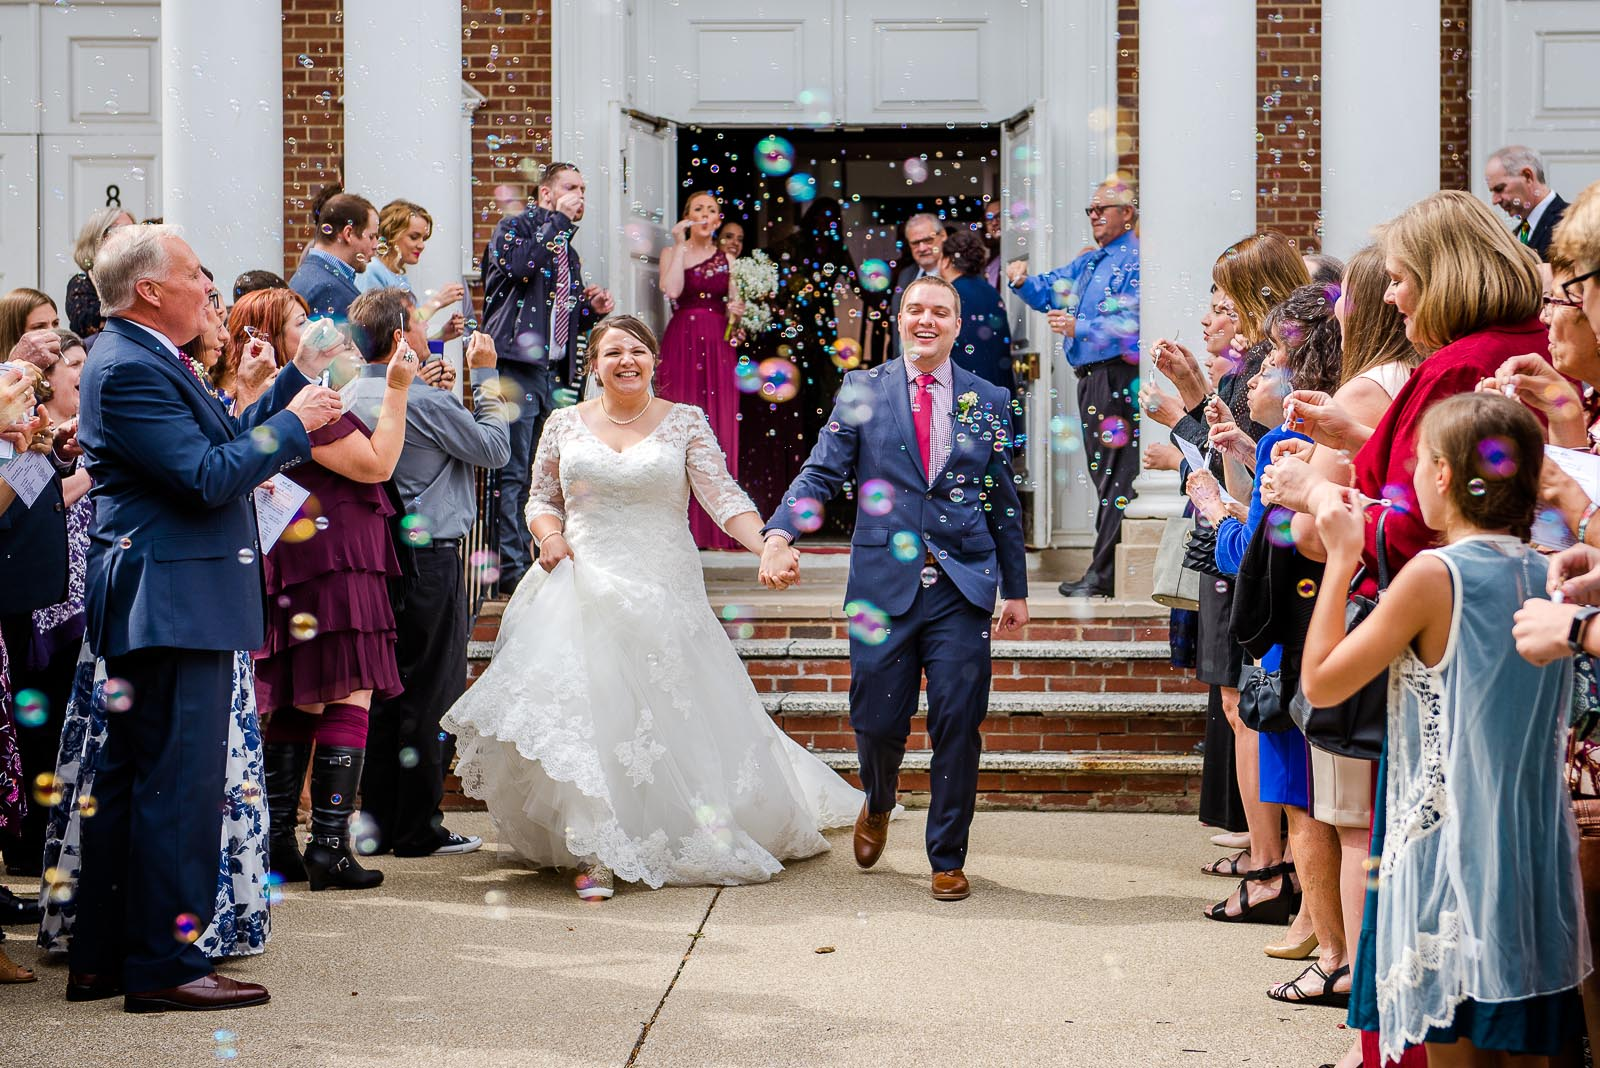 Eric_and_Christy_Photography_Blog_Wedding_Stacey_Geoff-20